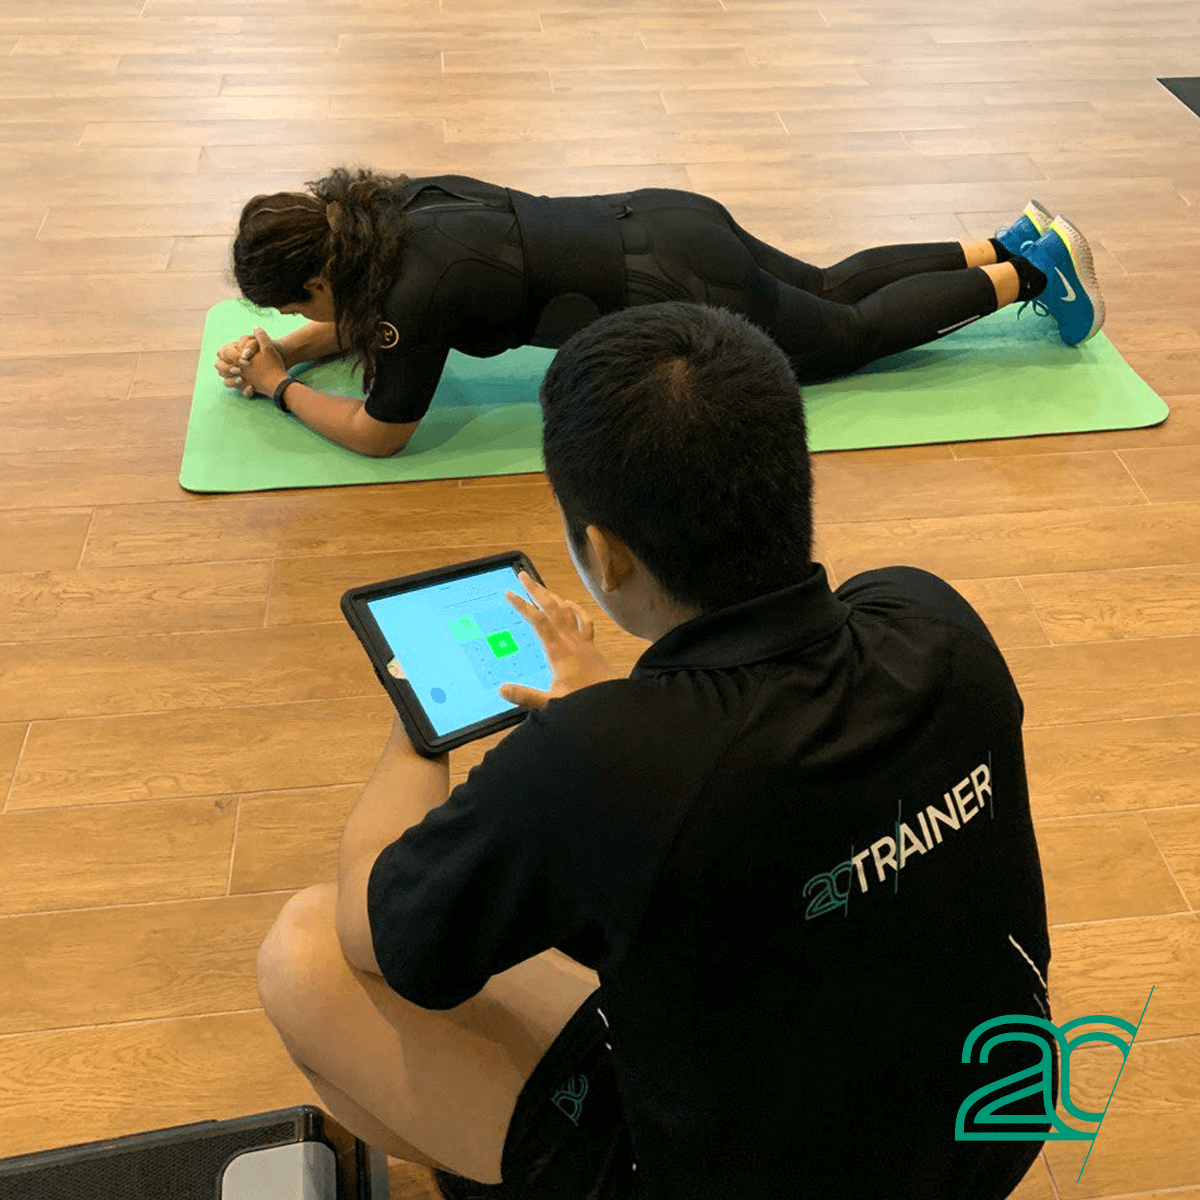 Woman Doing Core Exercises with a 20PerFit Personal Trainer